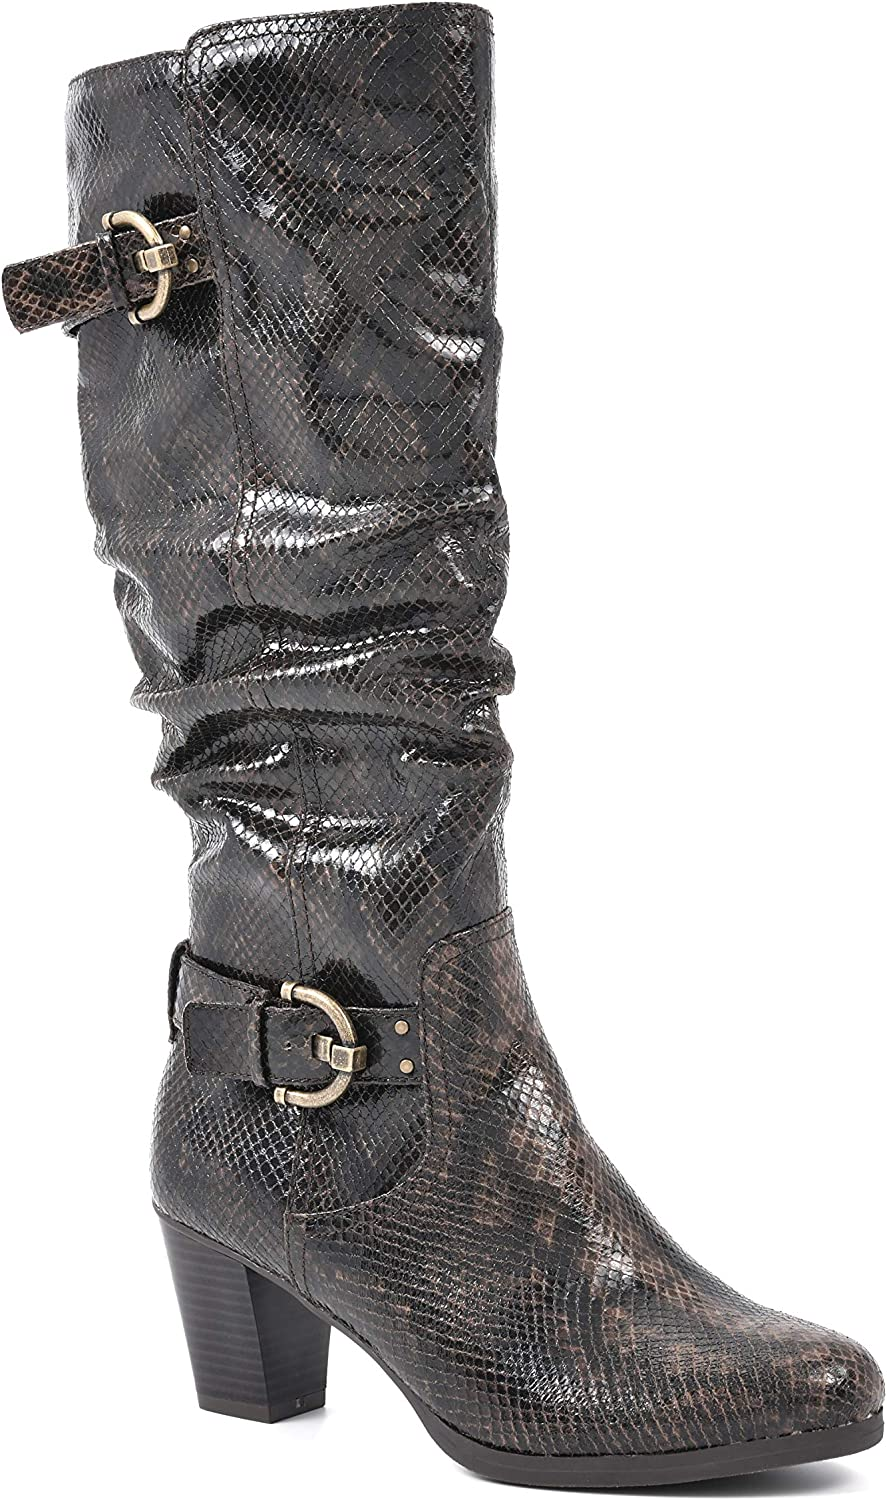 Rialto Women's Farewell Dk Brown Exotic Our Max 84% OFF shop OFFers the best service High Boot 7.5 Knee Size